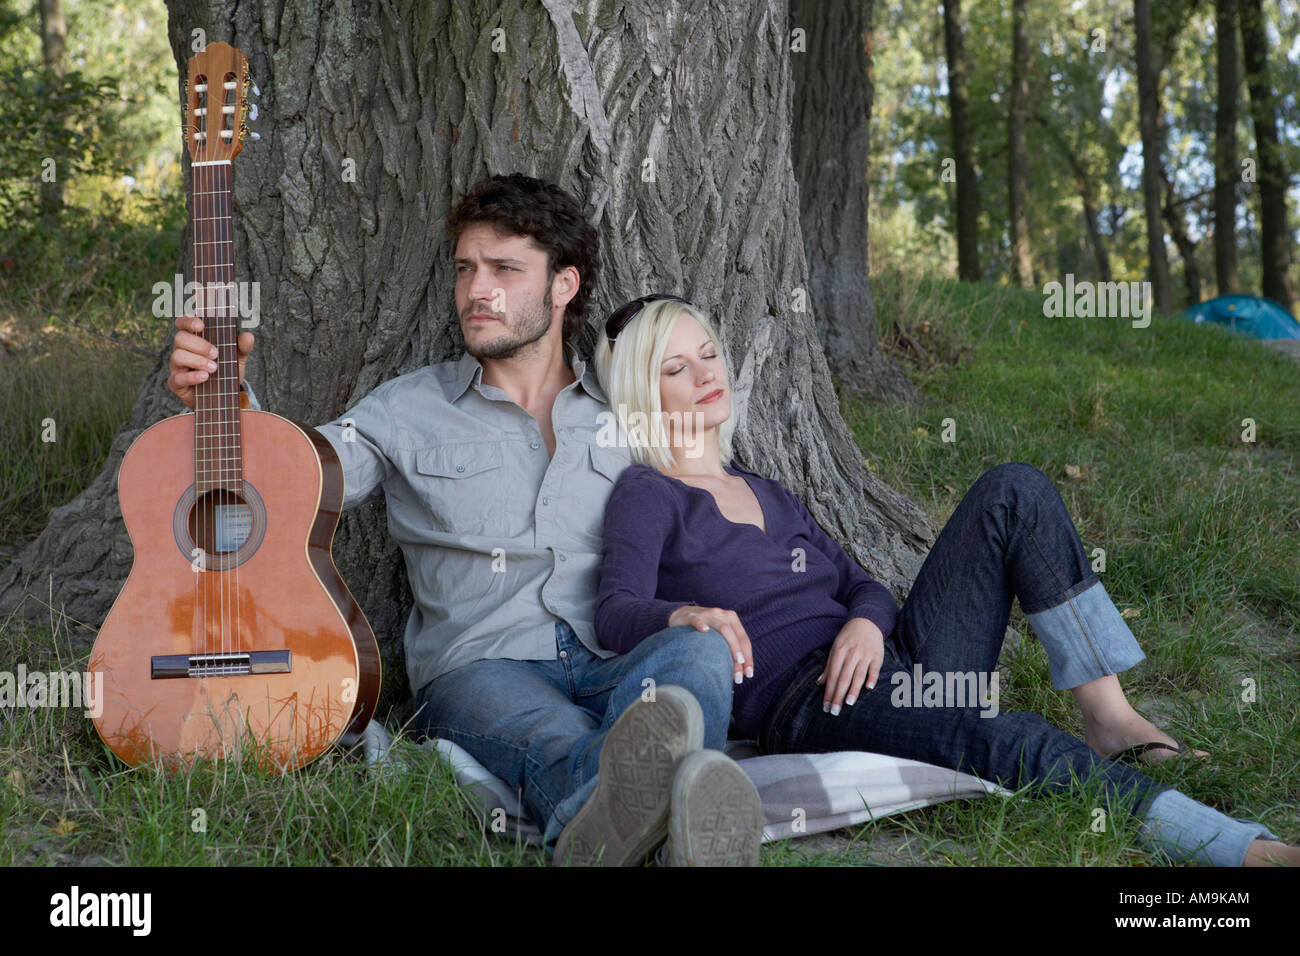 Man holding a guitar with sleeping woman leaning on him. - Stock Image